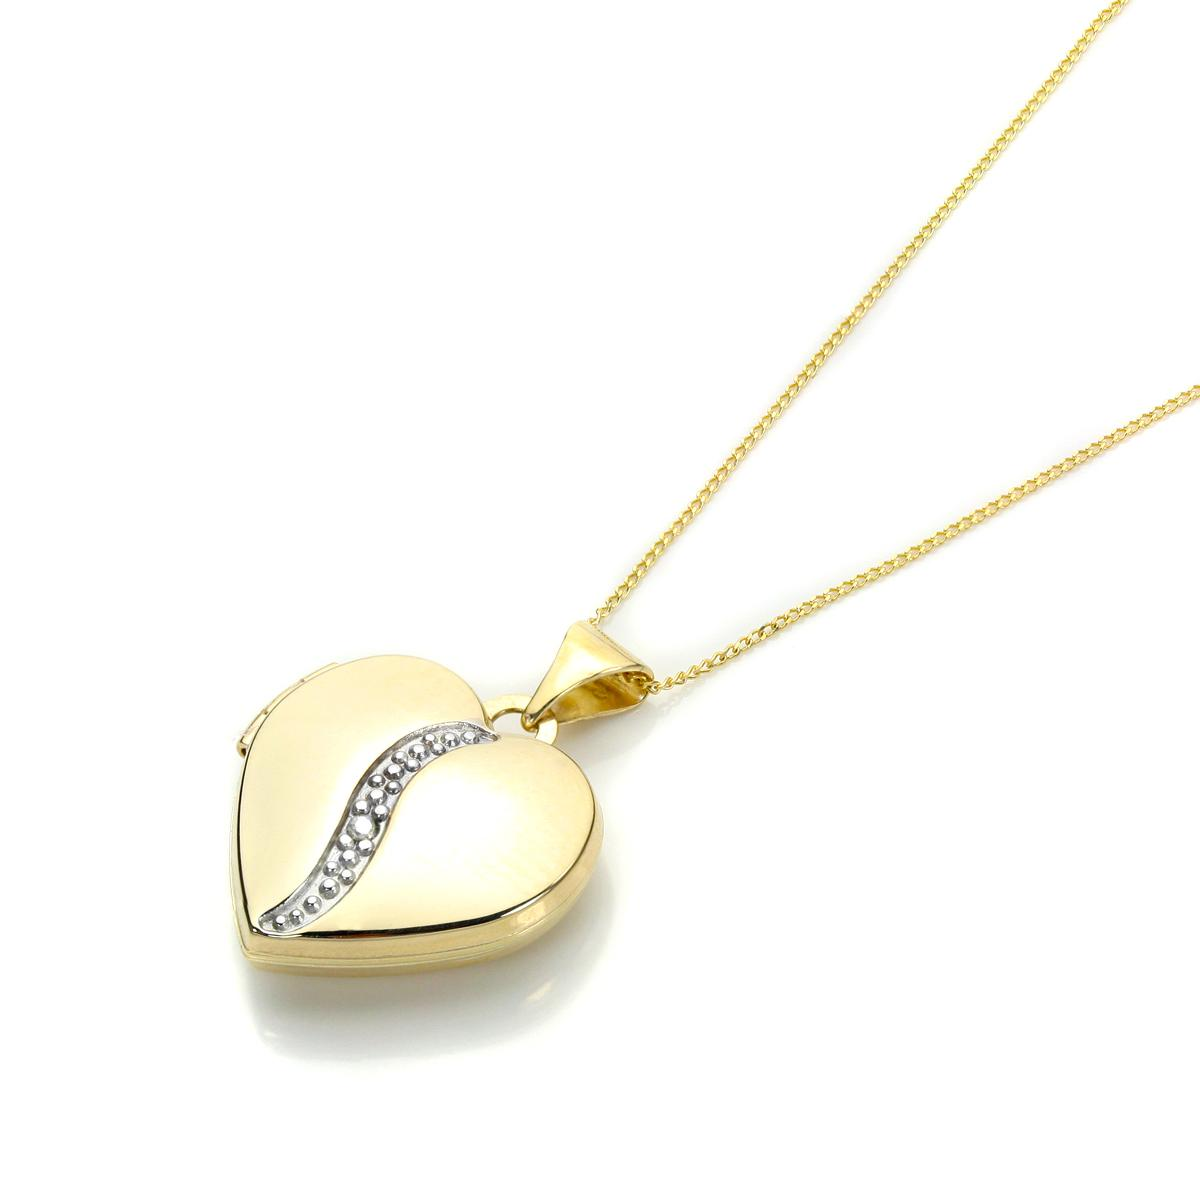 necklace gold shop original locket heart personalised pendant hurleyburley